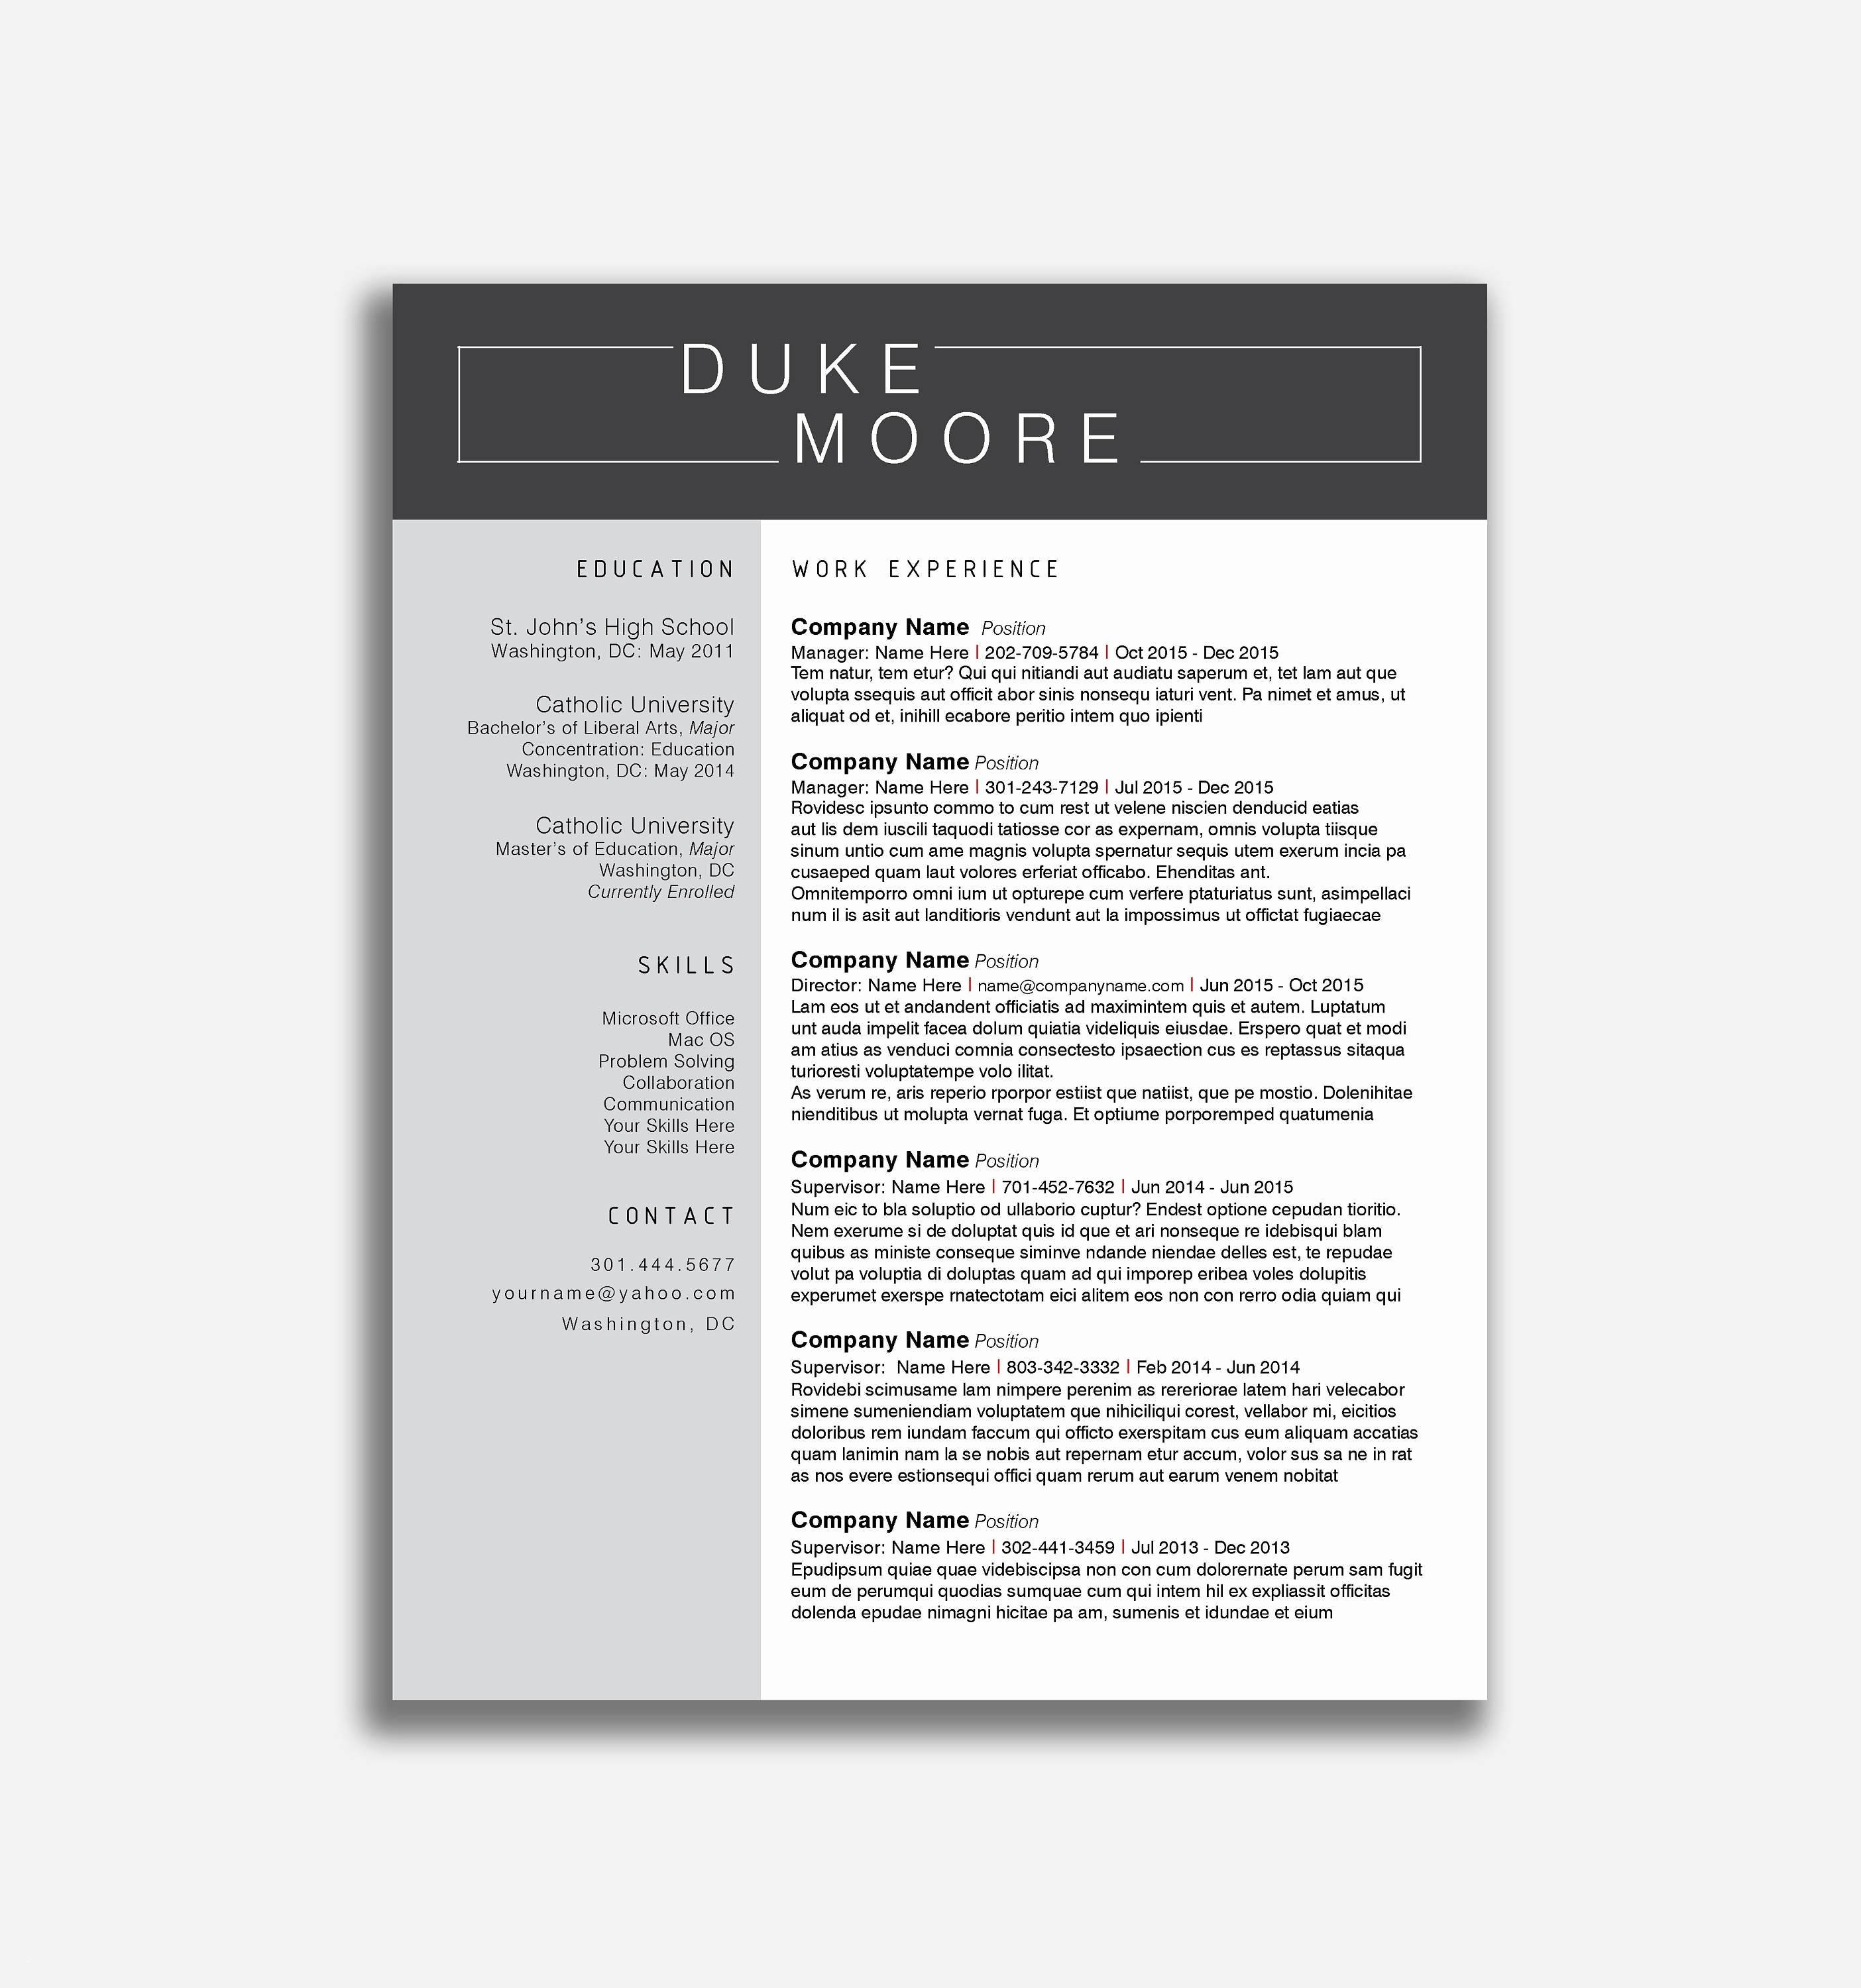 Free Simple Resume format Download - Simple Resume Template Download Awesome Acting Resume format New